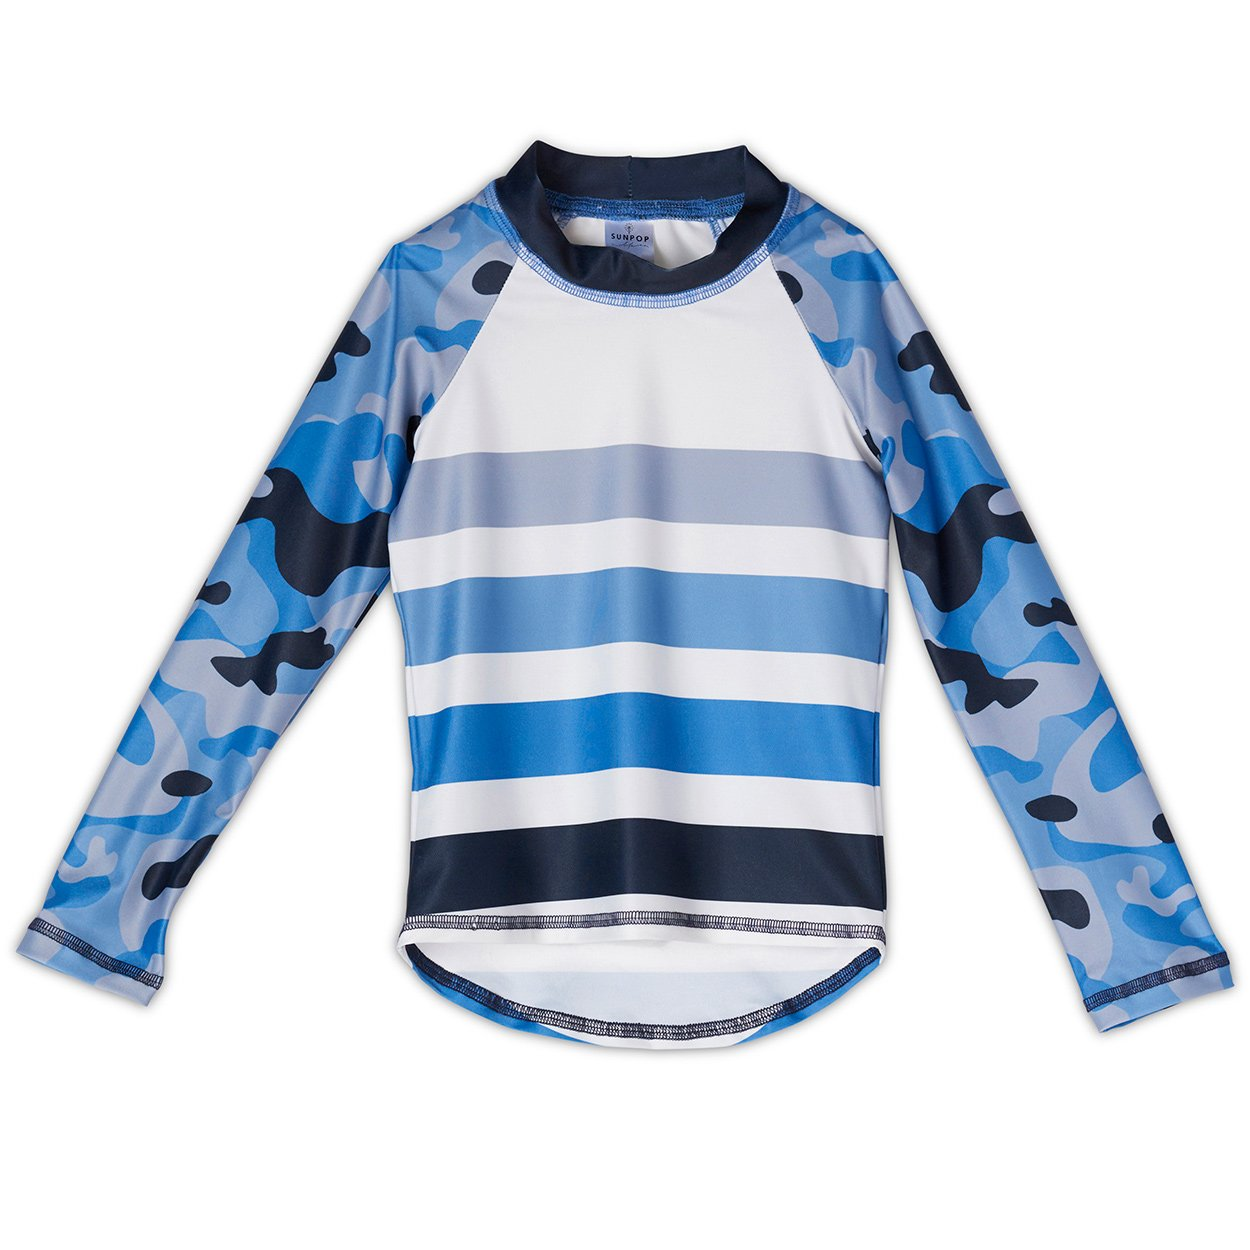 Blue Camo Rash Guard Top UPF 50+